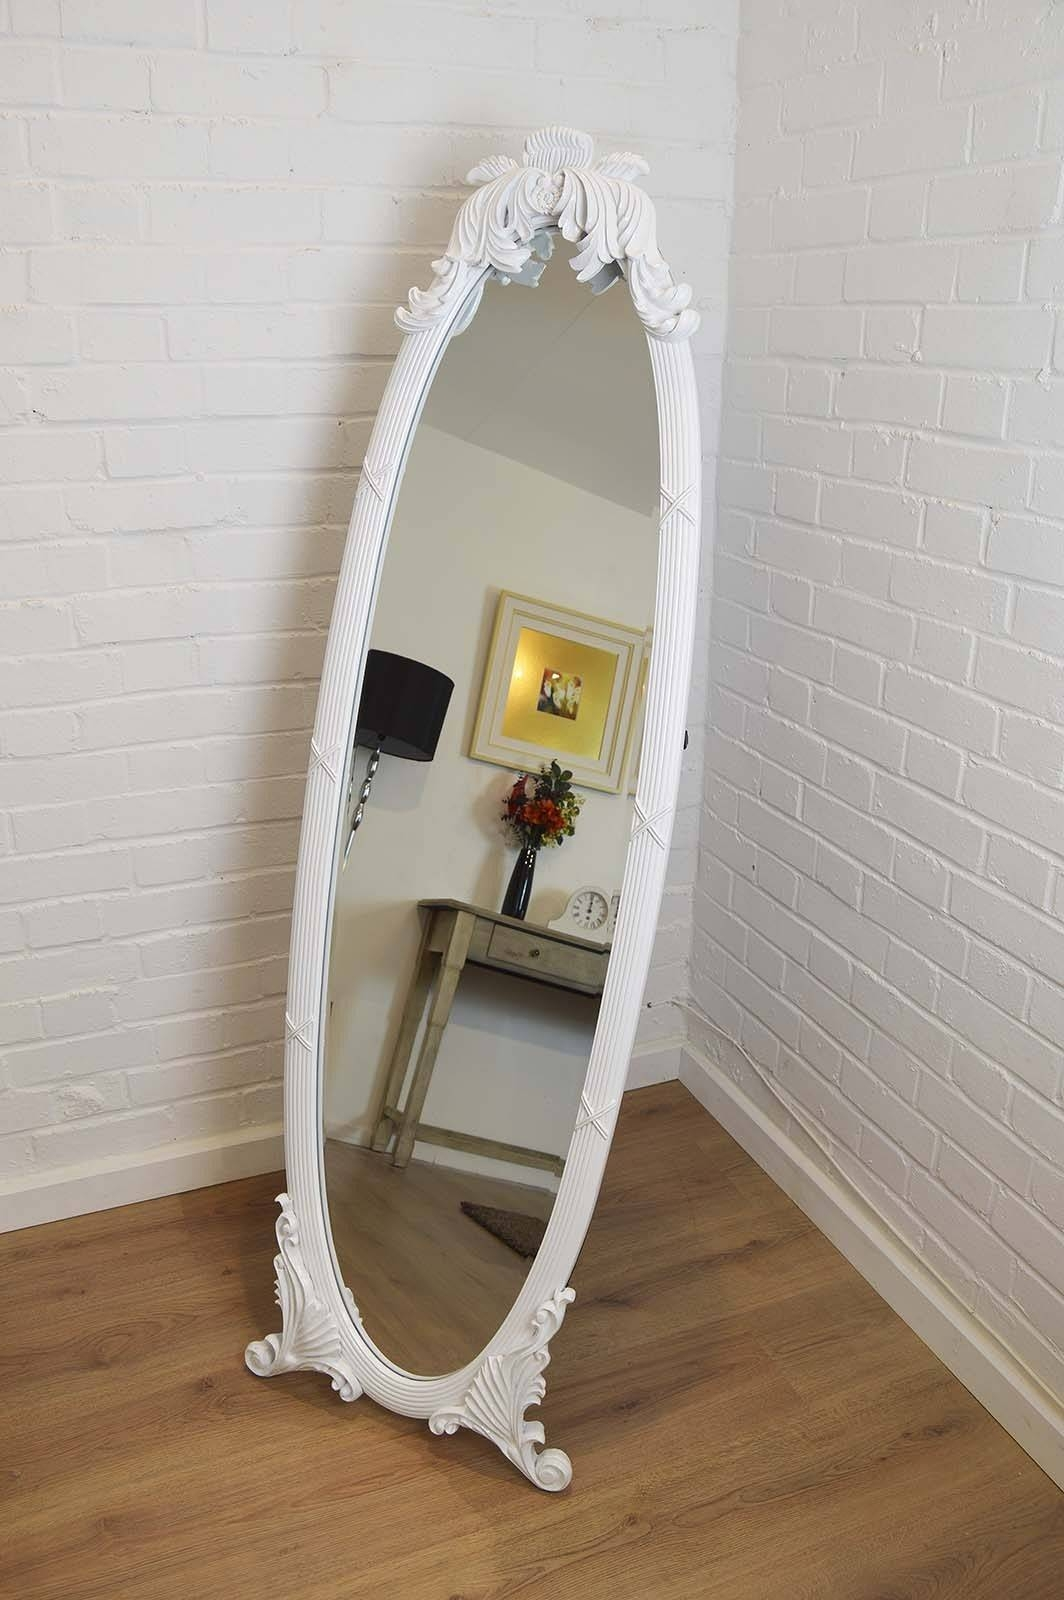 Shabby Chic Floor Standing Mirror 97 Stunning Decor With Full With Ornate Standing Mirrors (View 10 of 15)